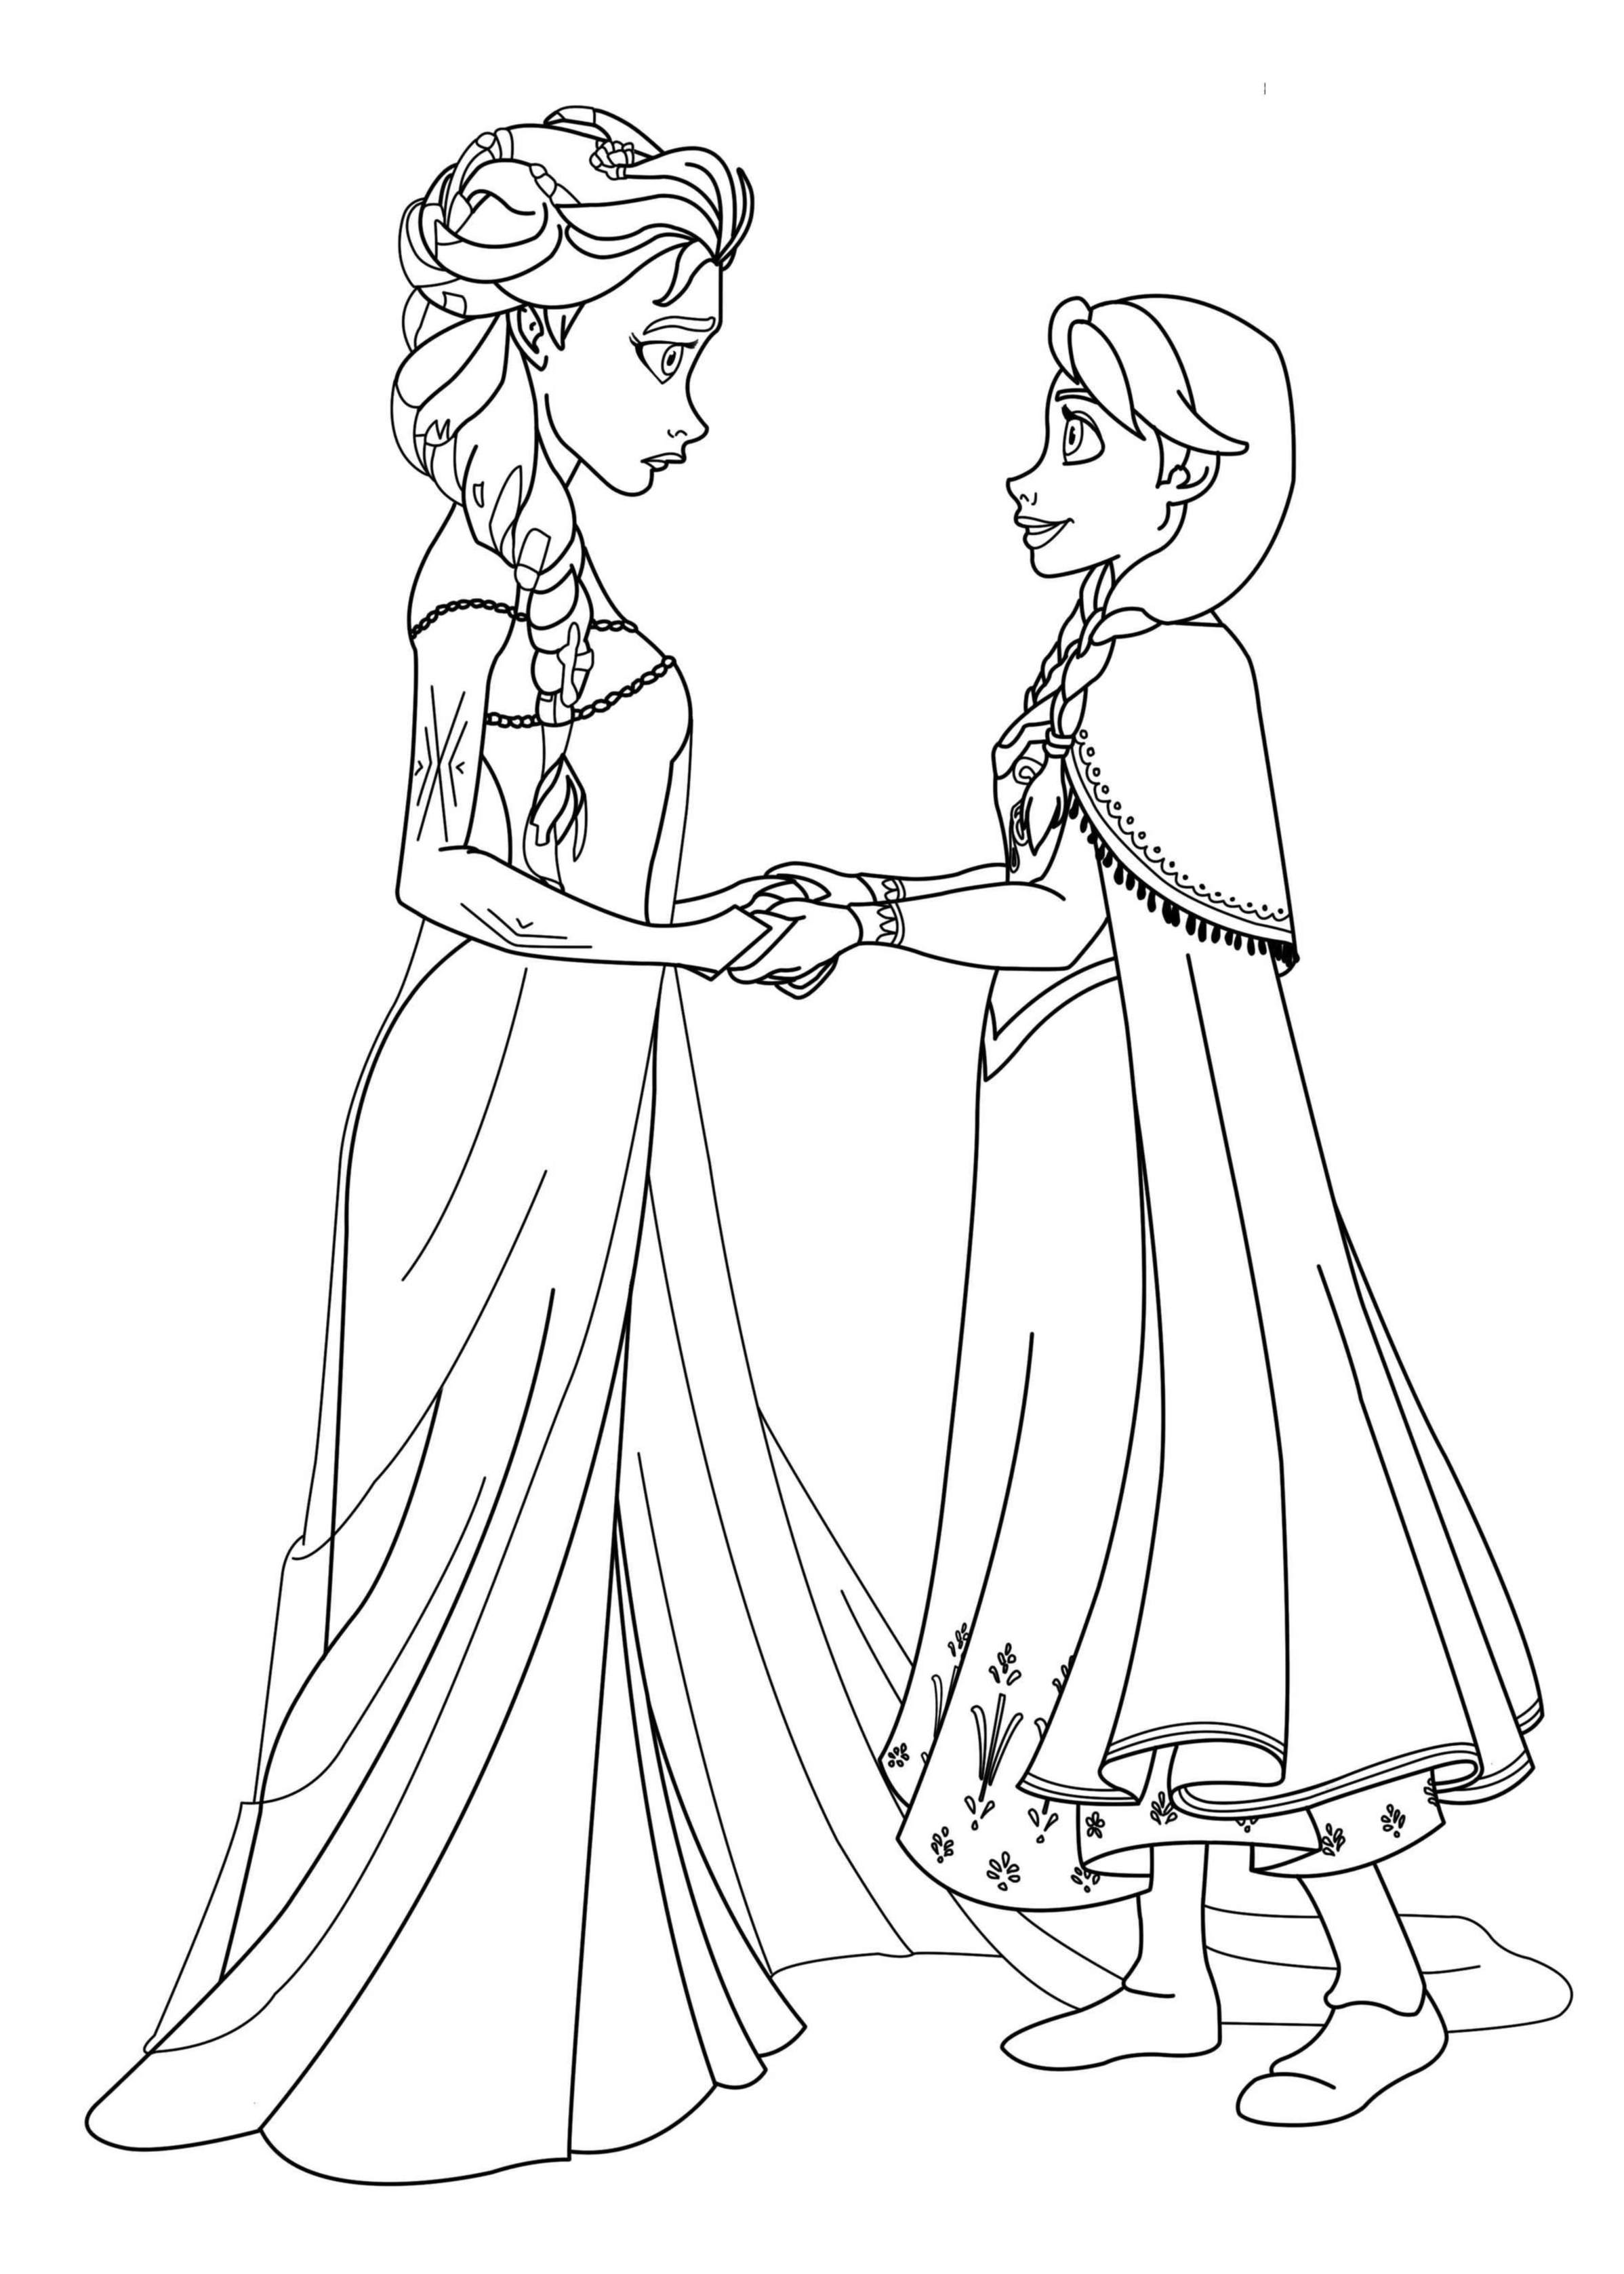 free frozen coloring pages 21 sites with frozen 2 coloring pages for free the moms buzz free pages coloring frozen